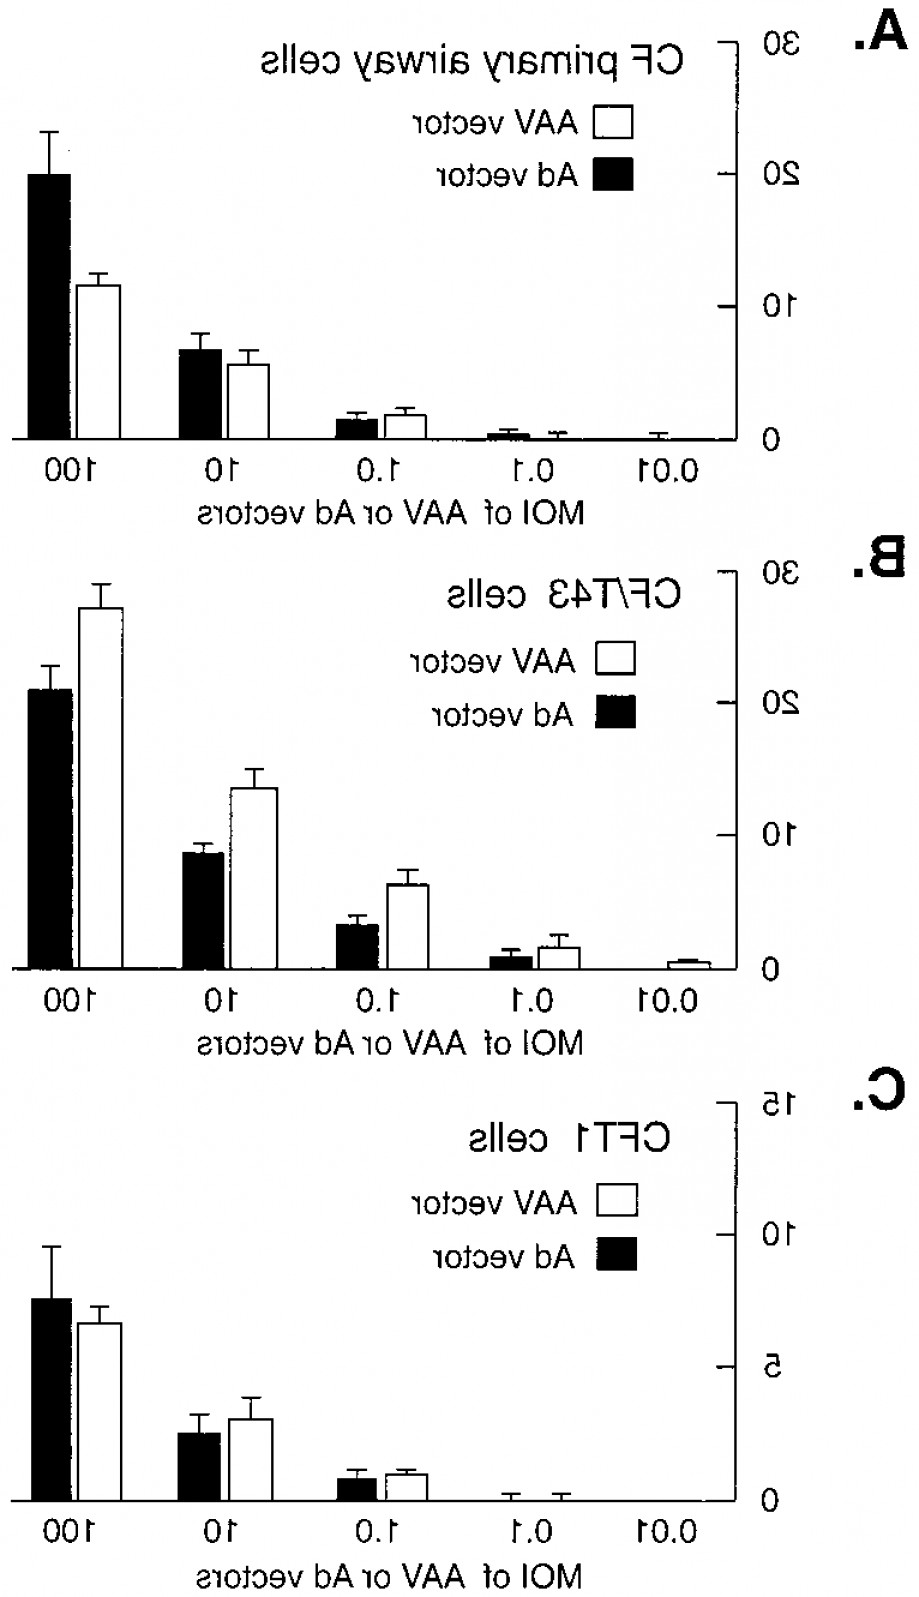 Cloning AAV Vectors: The Transduction Efficiencies Of Aav And Ad Vectors In Primary Cultures Of Human Airwayfig